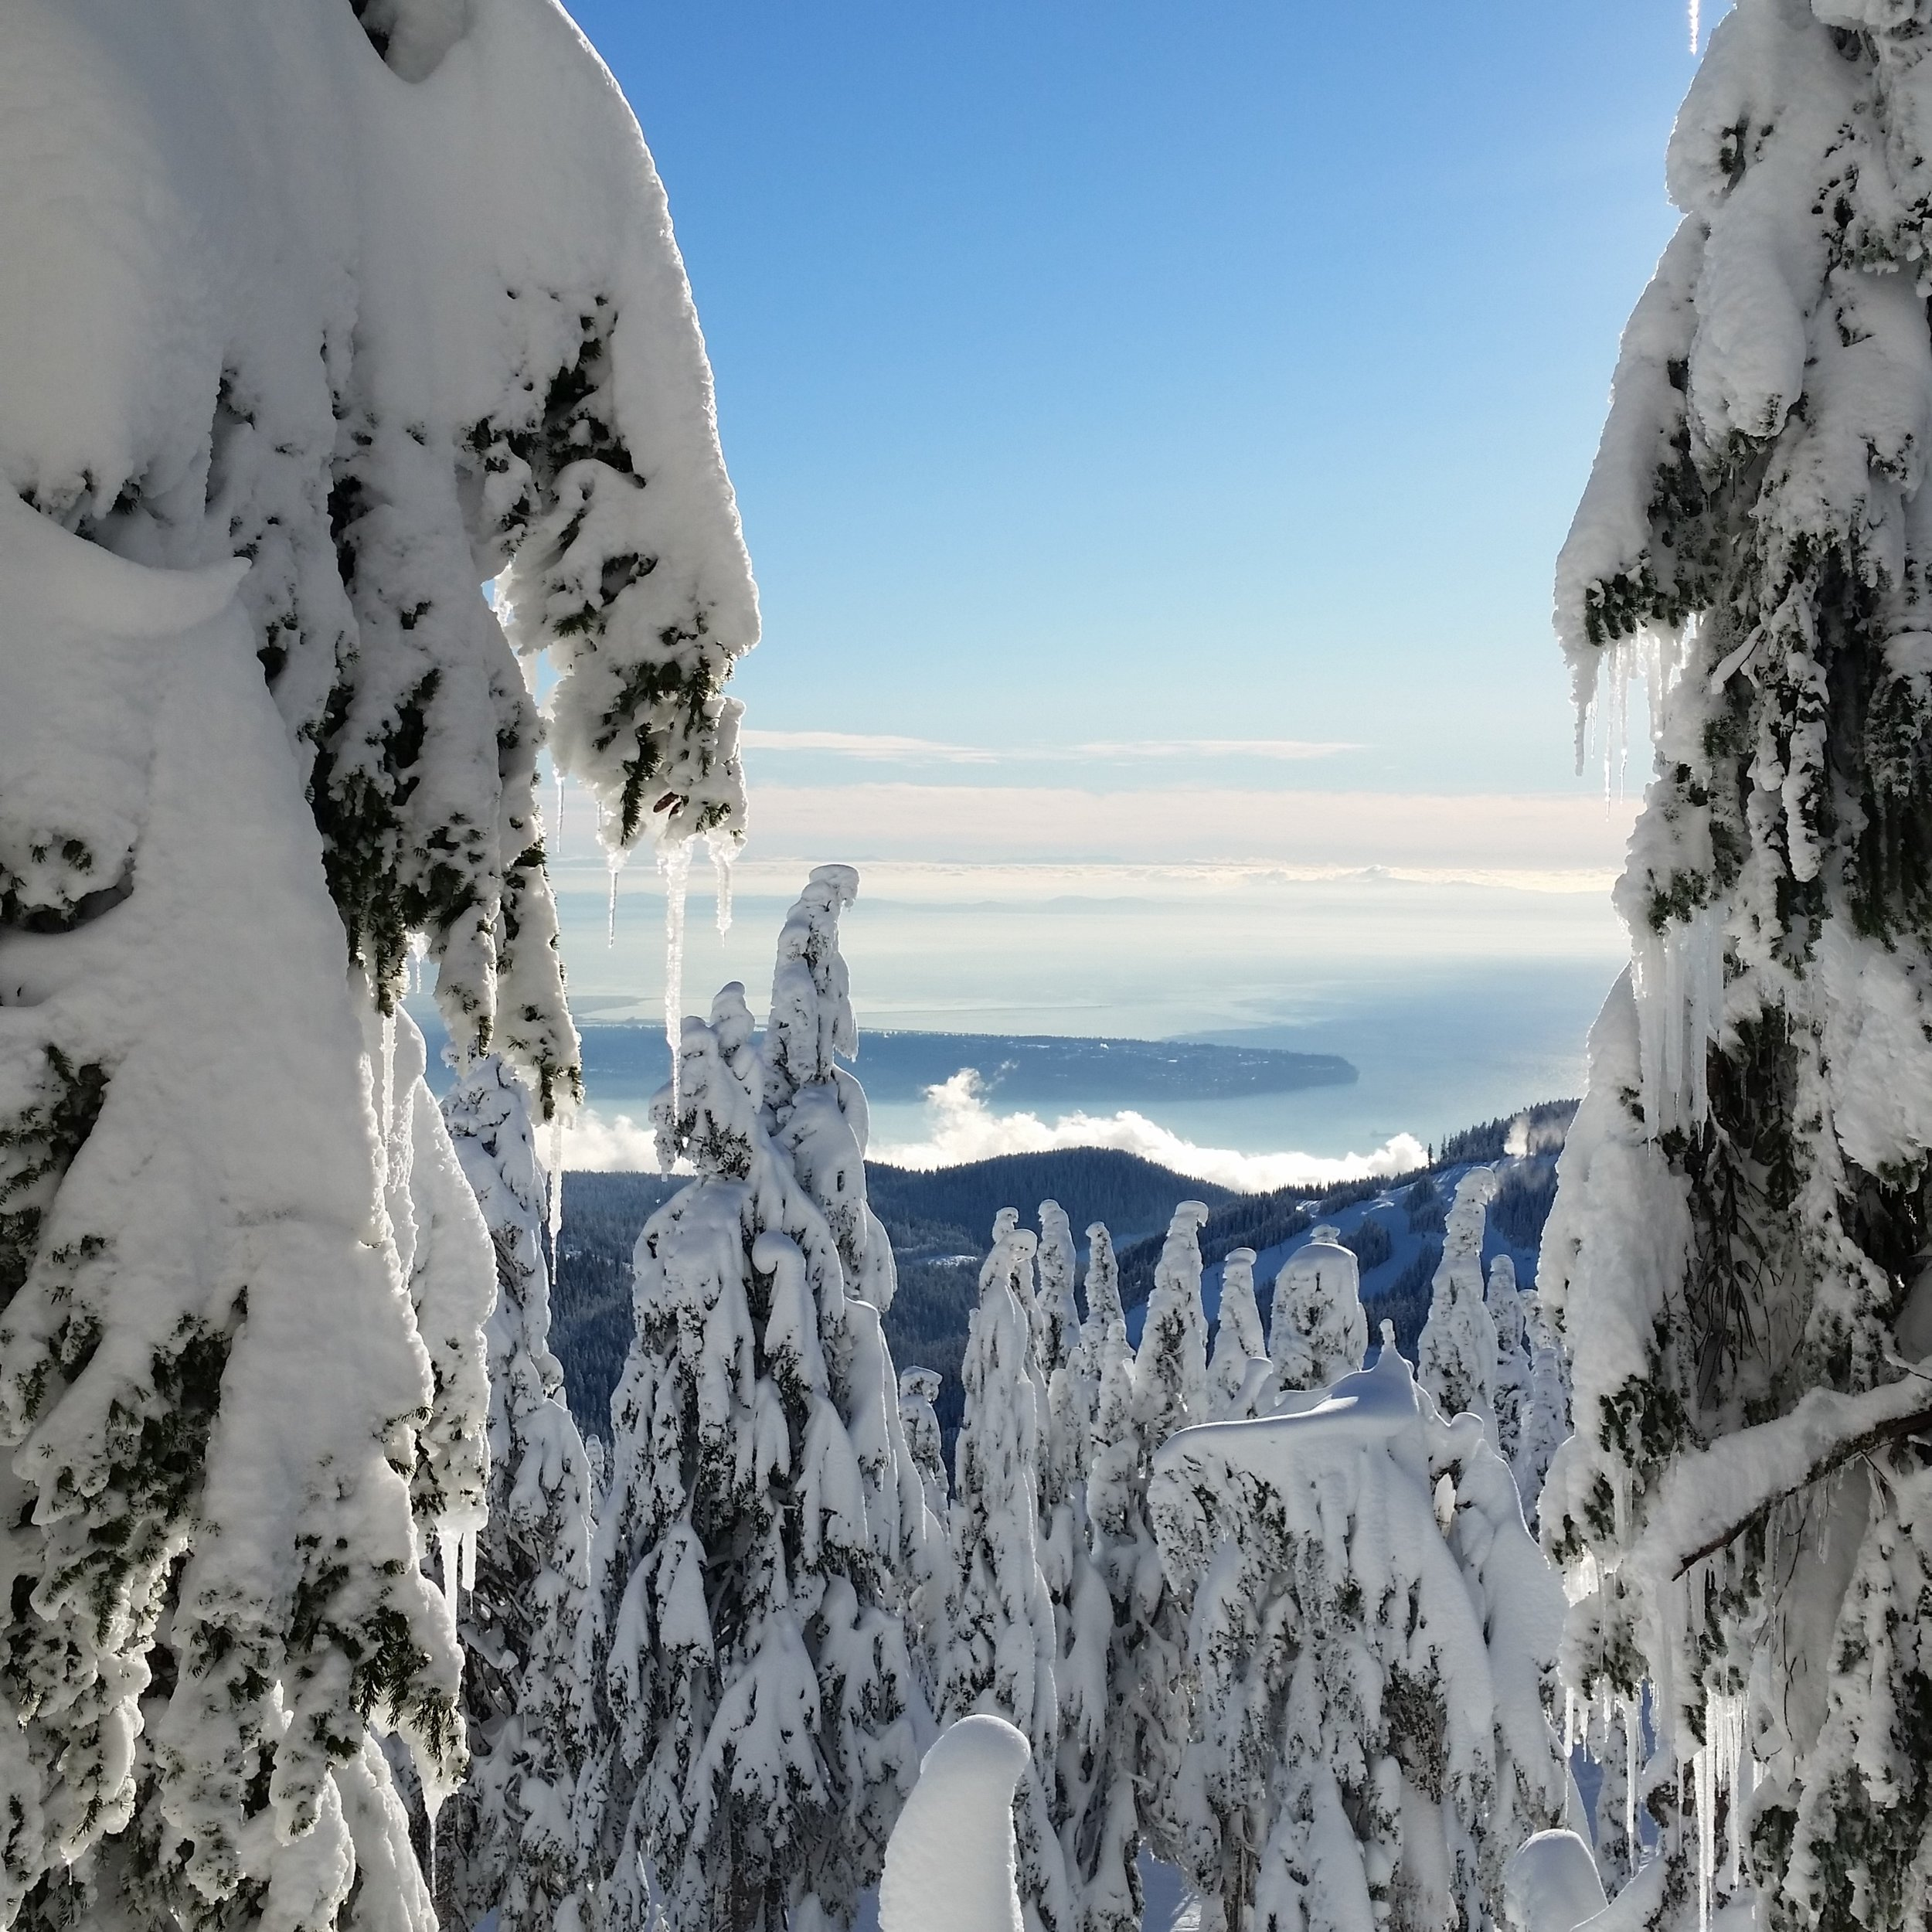 A peek of Bowen Island through the snow covered trees